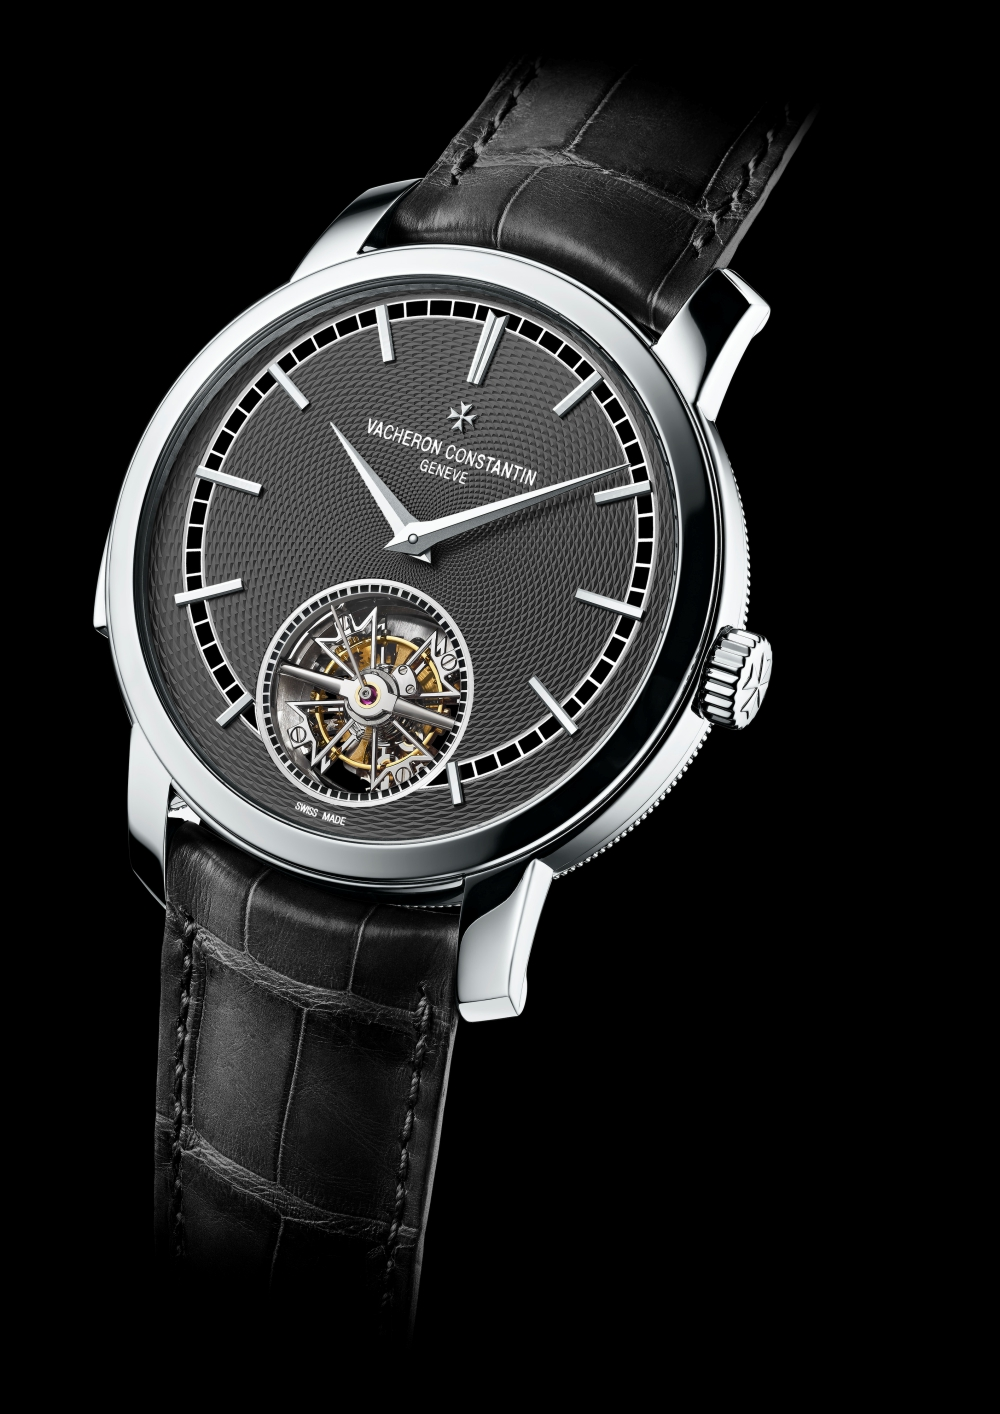 foto-2_vacheron_constantin_traditionnelle_-tourbillon_-repeticion-minutos_